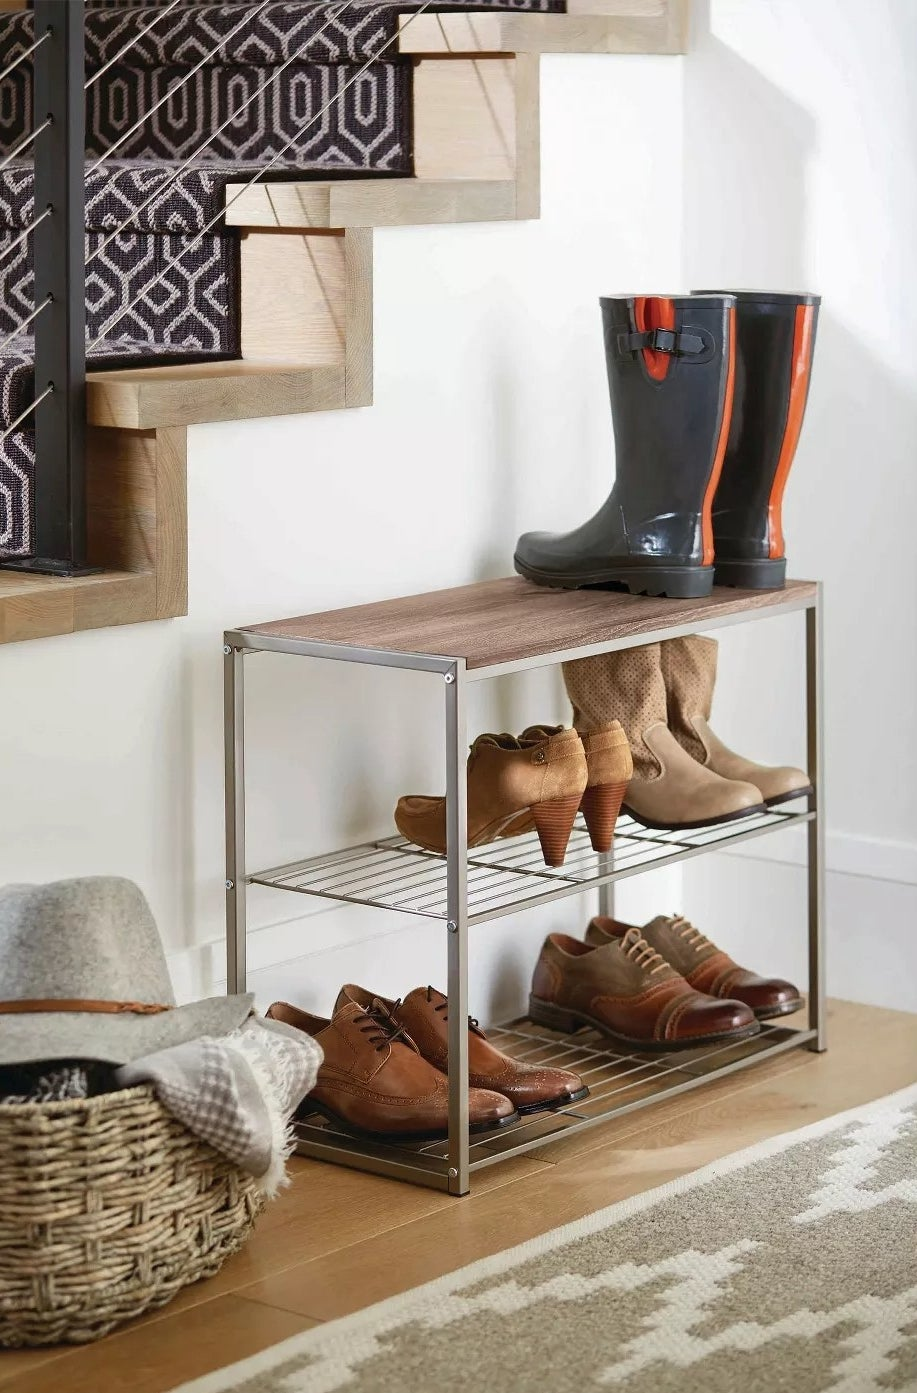 The shoe rack with three tiers in an entryway